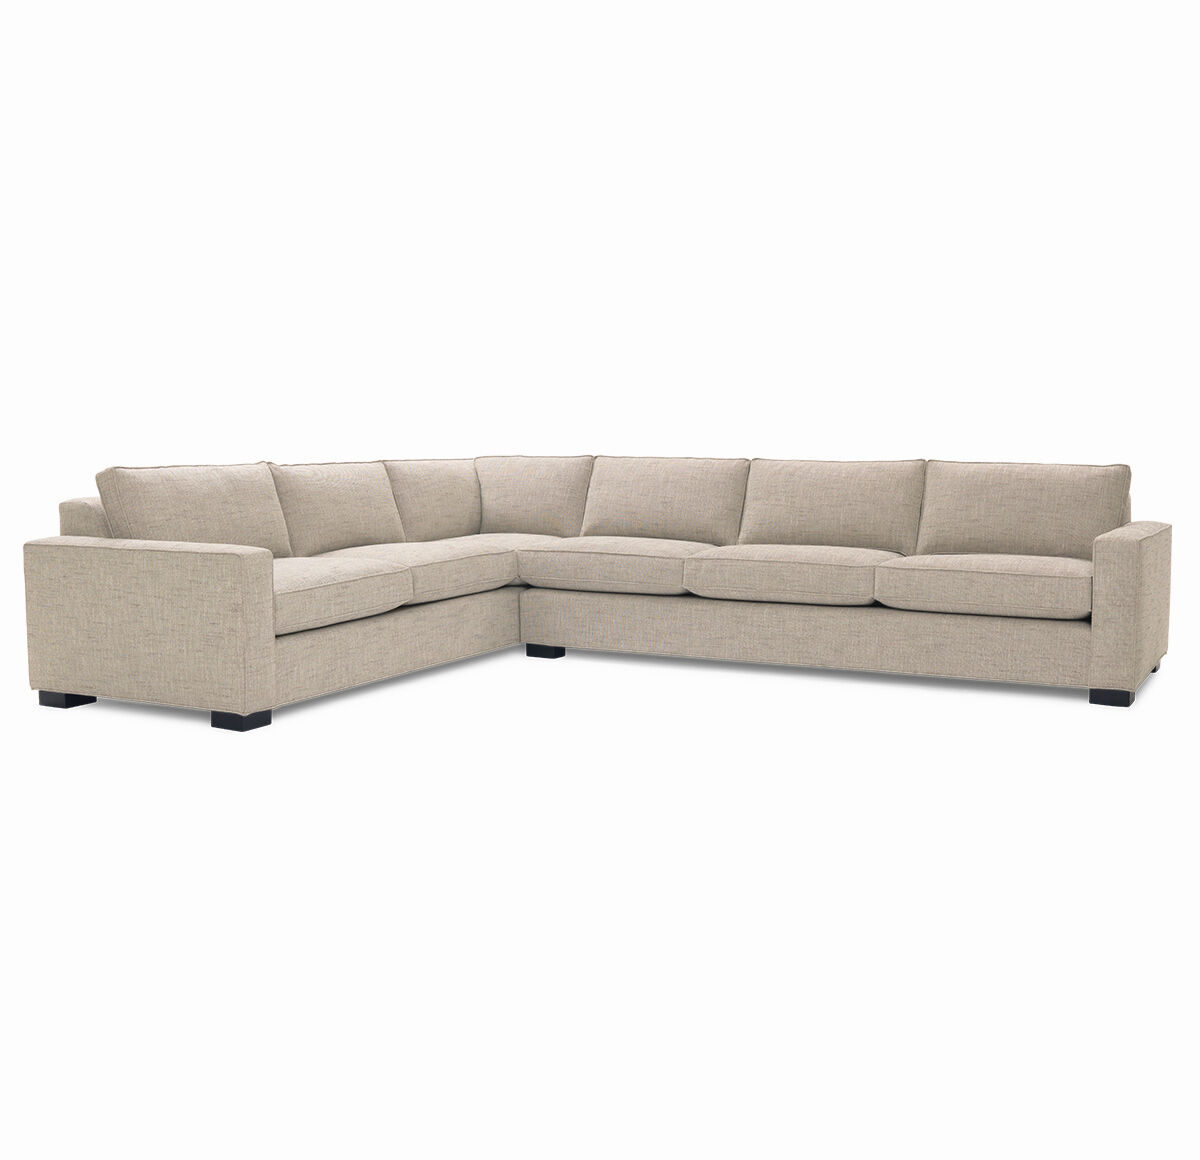 CARSON SECTIONAL SOFA, HOLLINS   FLAX, Hi Res